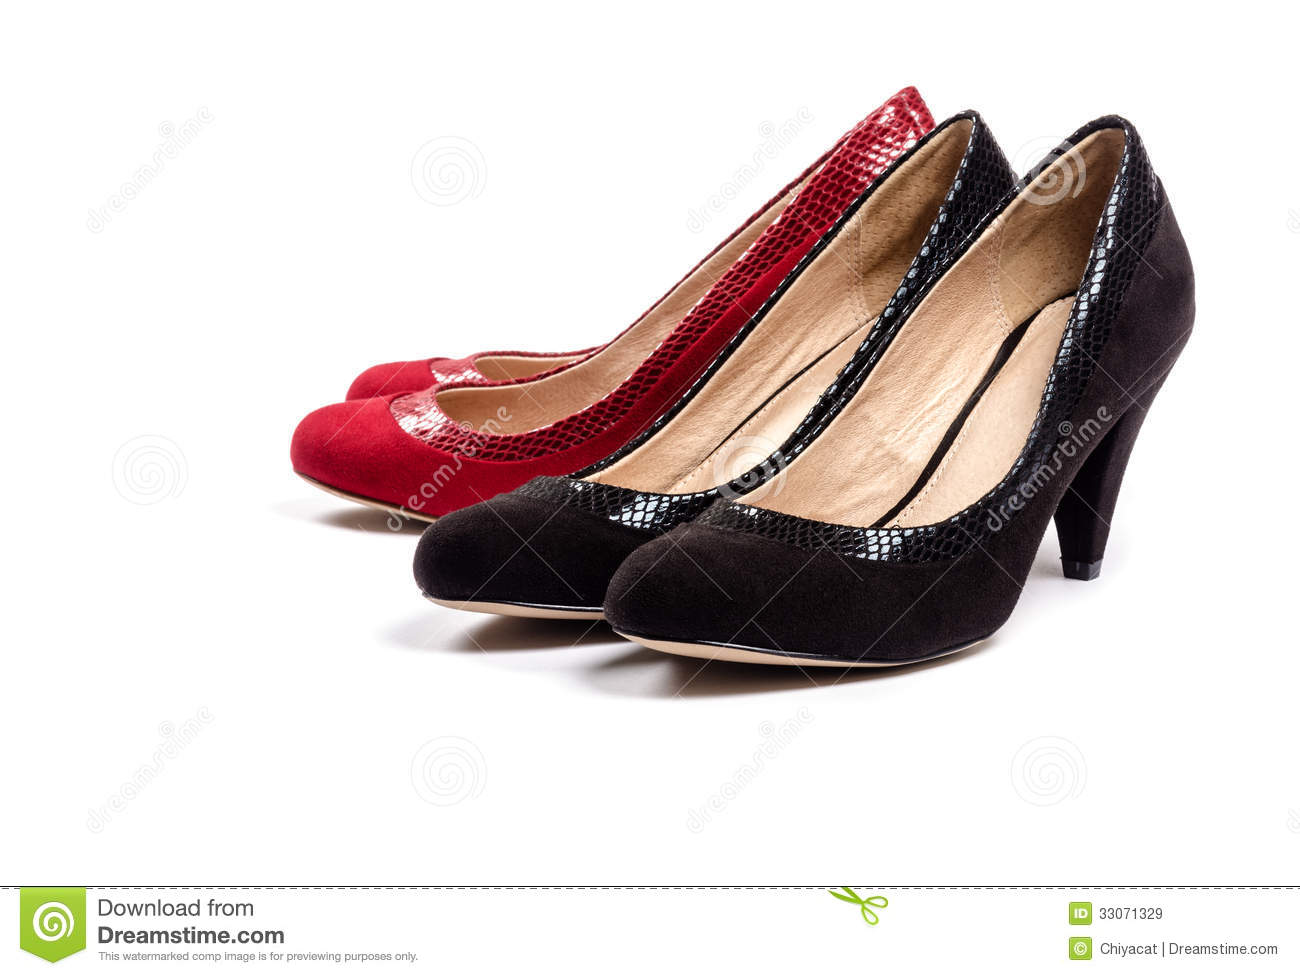 133f5705971 Black And Red Suede Pumps On White  3 Stock Image - Image of shoes ...